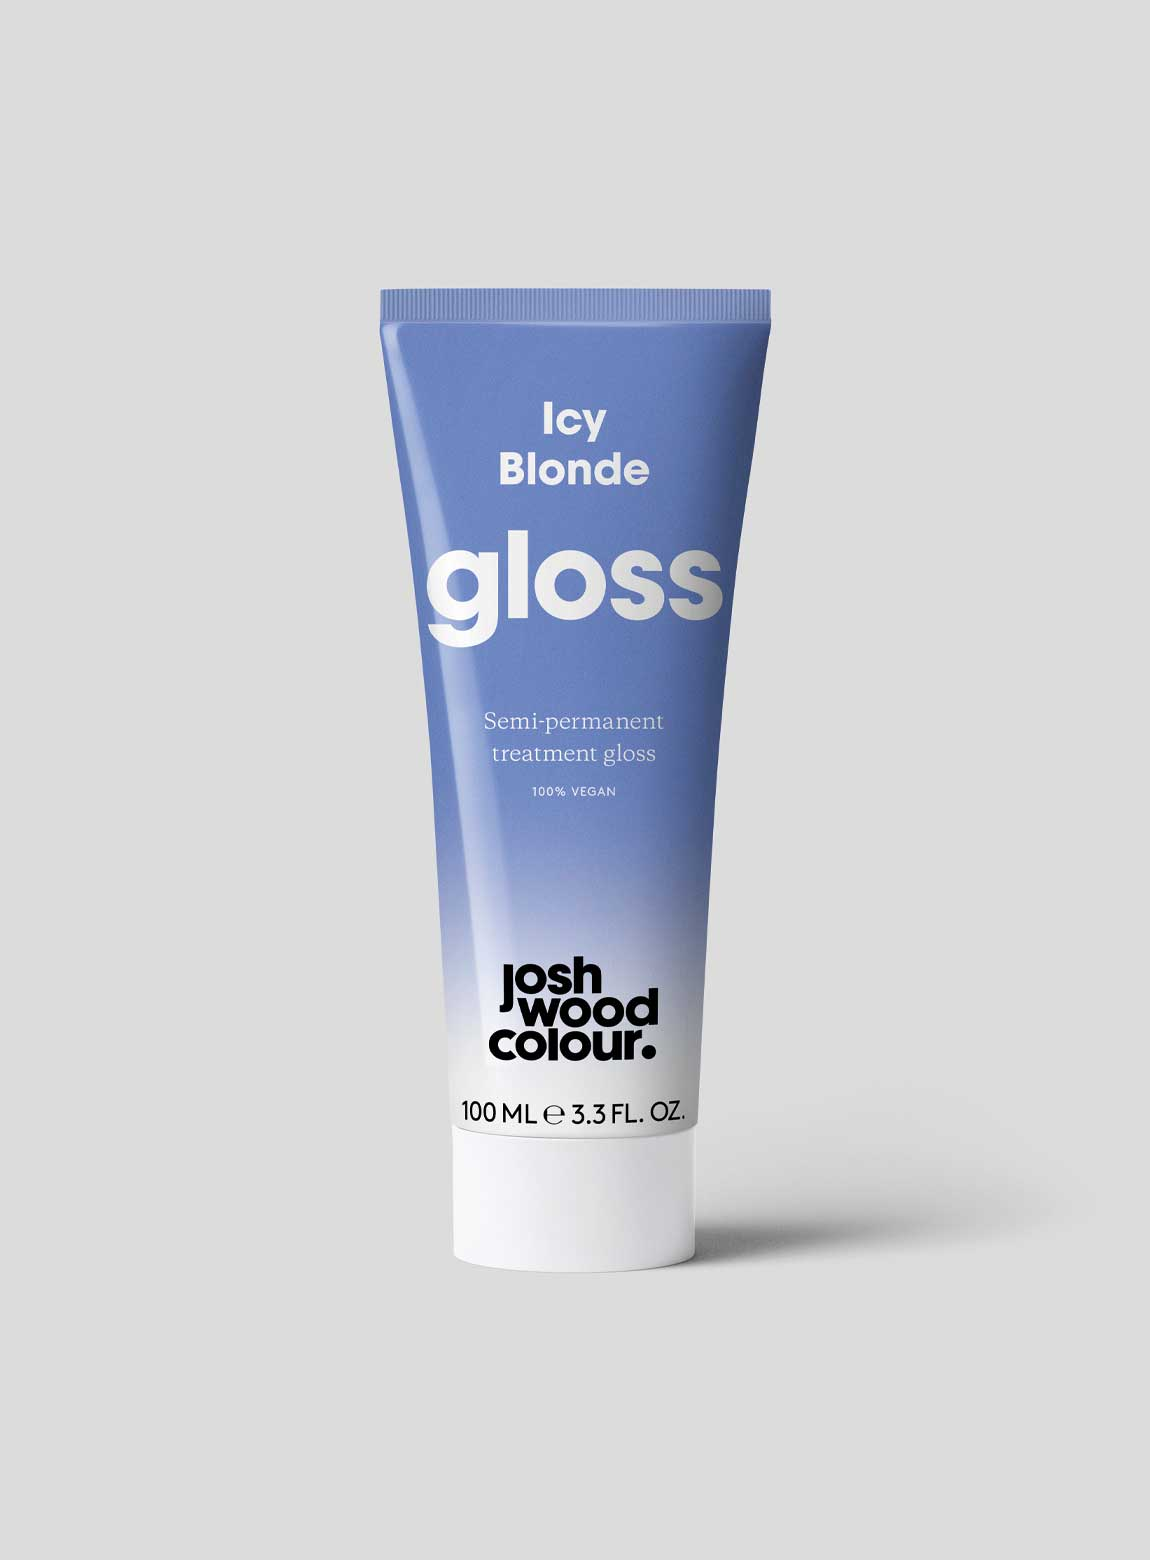 Icy Blonde - Gloss